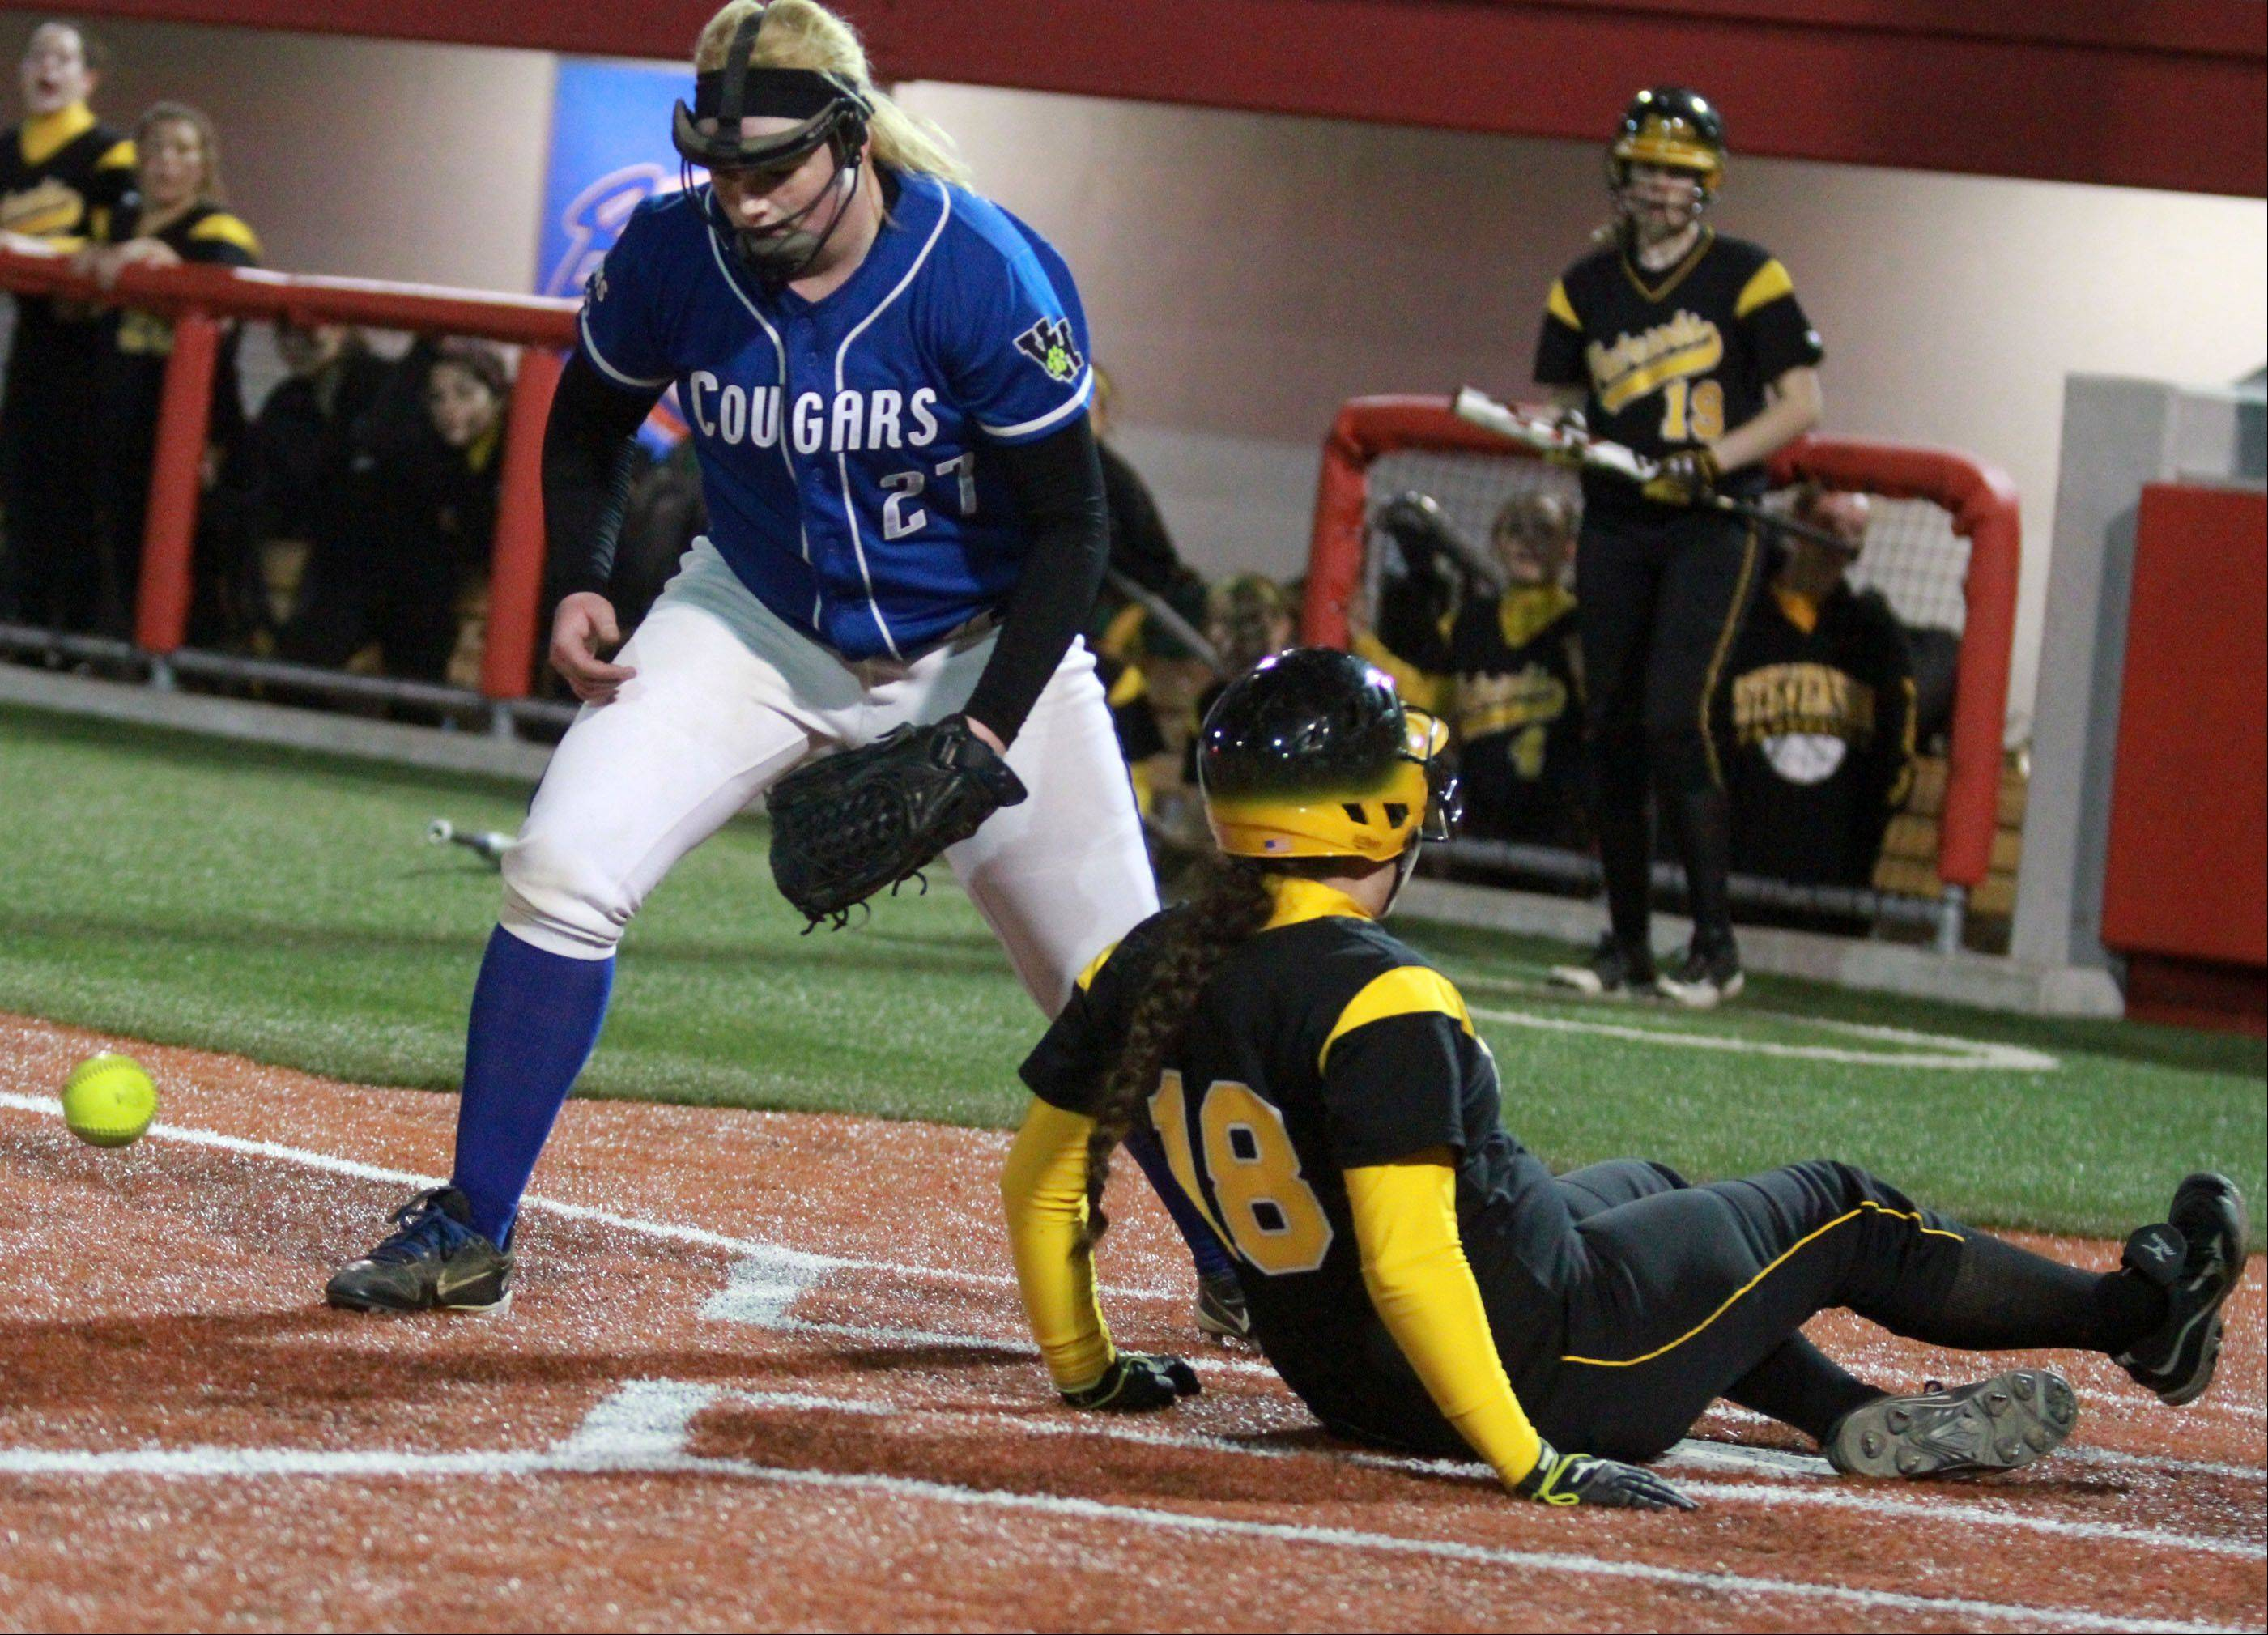 Stevenson's Abby O'Connor slides safe into home plate as Vernon Hills' pitcher Jenn Claussen covers the plate after throwing a wild pitch in the fifth-inning at The Ballpark at Rosemont on Friday.